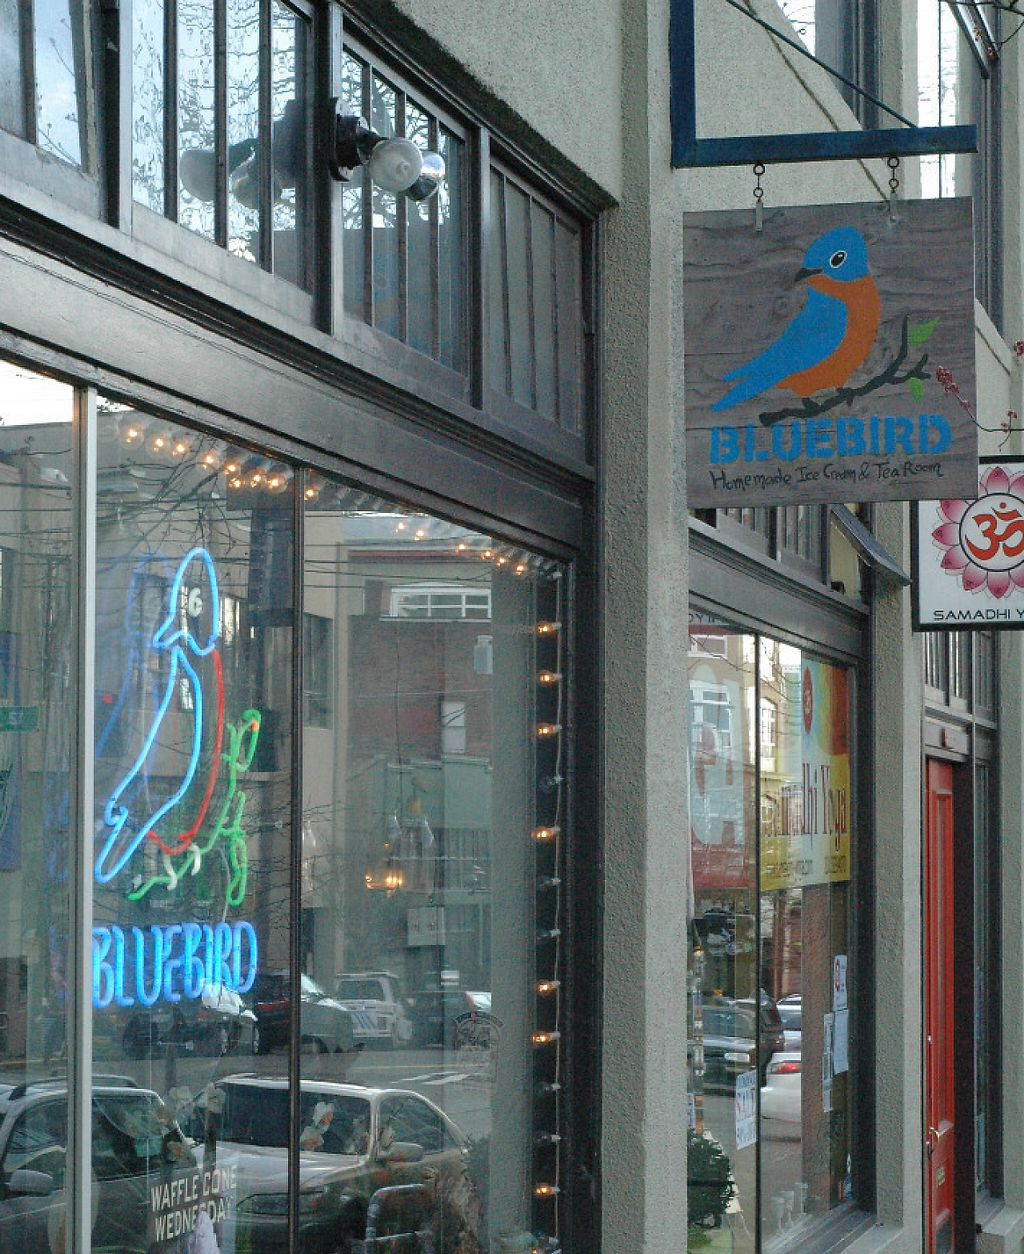 """Photo of Bluebird Ice Cream  by <a href=""""/members/profile/Vegan%20GiGi"""">Vegan GiGi</a> <br/>Bluebird Ice Cream <br/> October 8, 2016  - <a href='/contact/abuse/image/64067/233310'>Report</a>"""